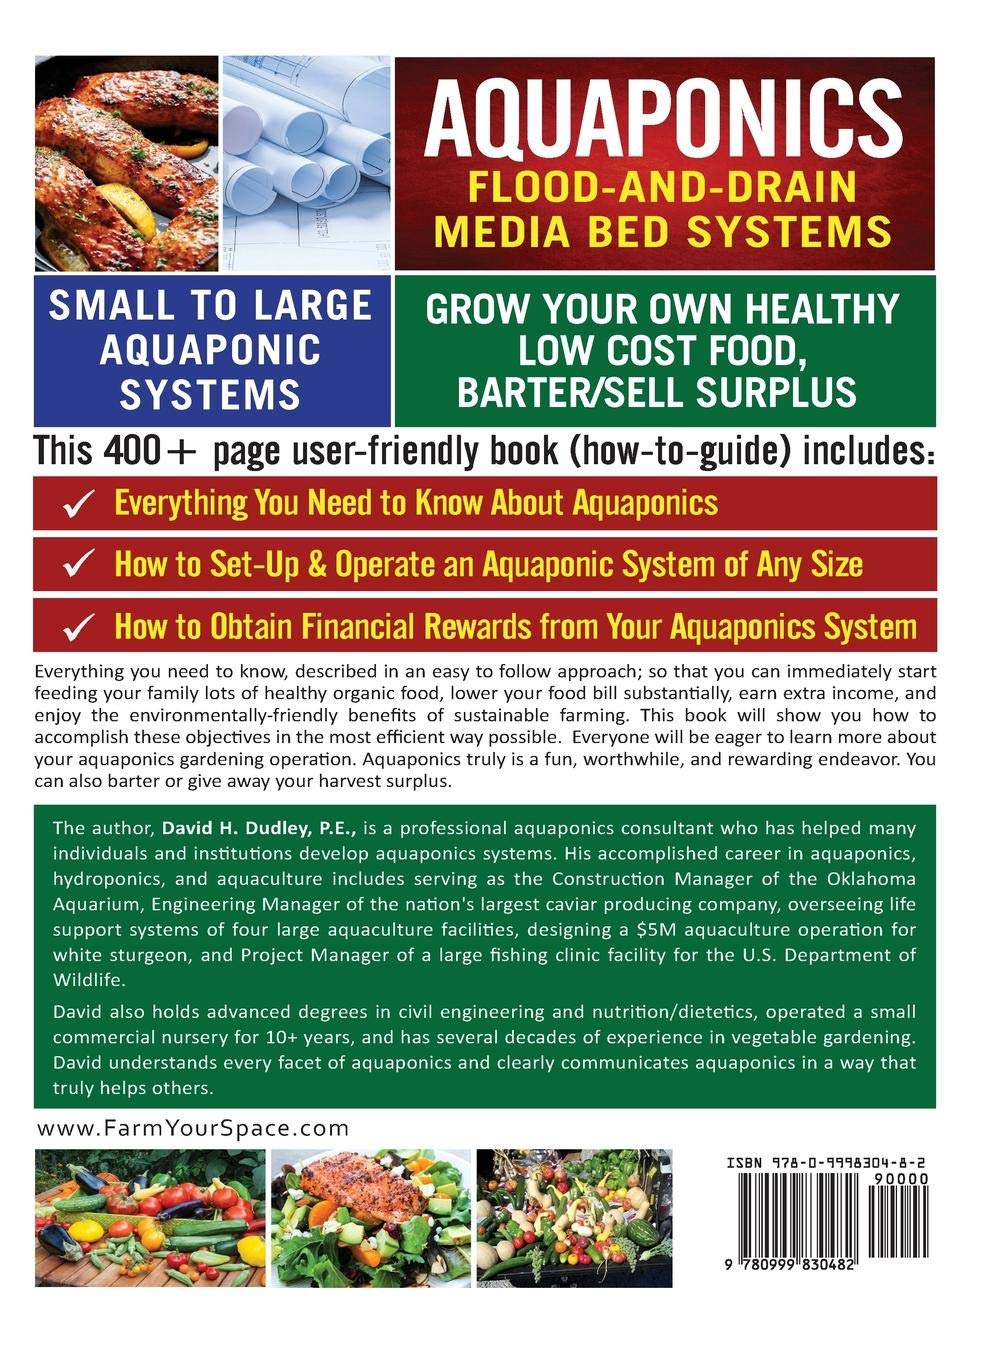 Buy Aquaponic Flood-And-Drain: Media-Bed Systems Book Online